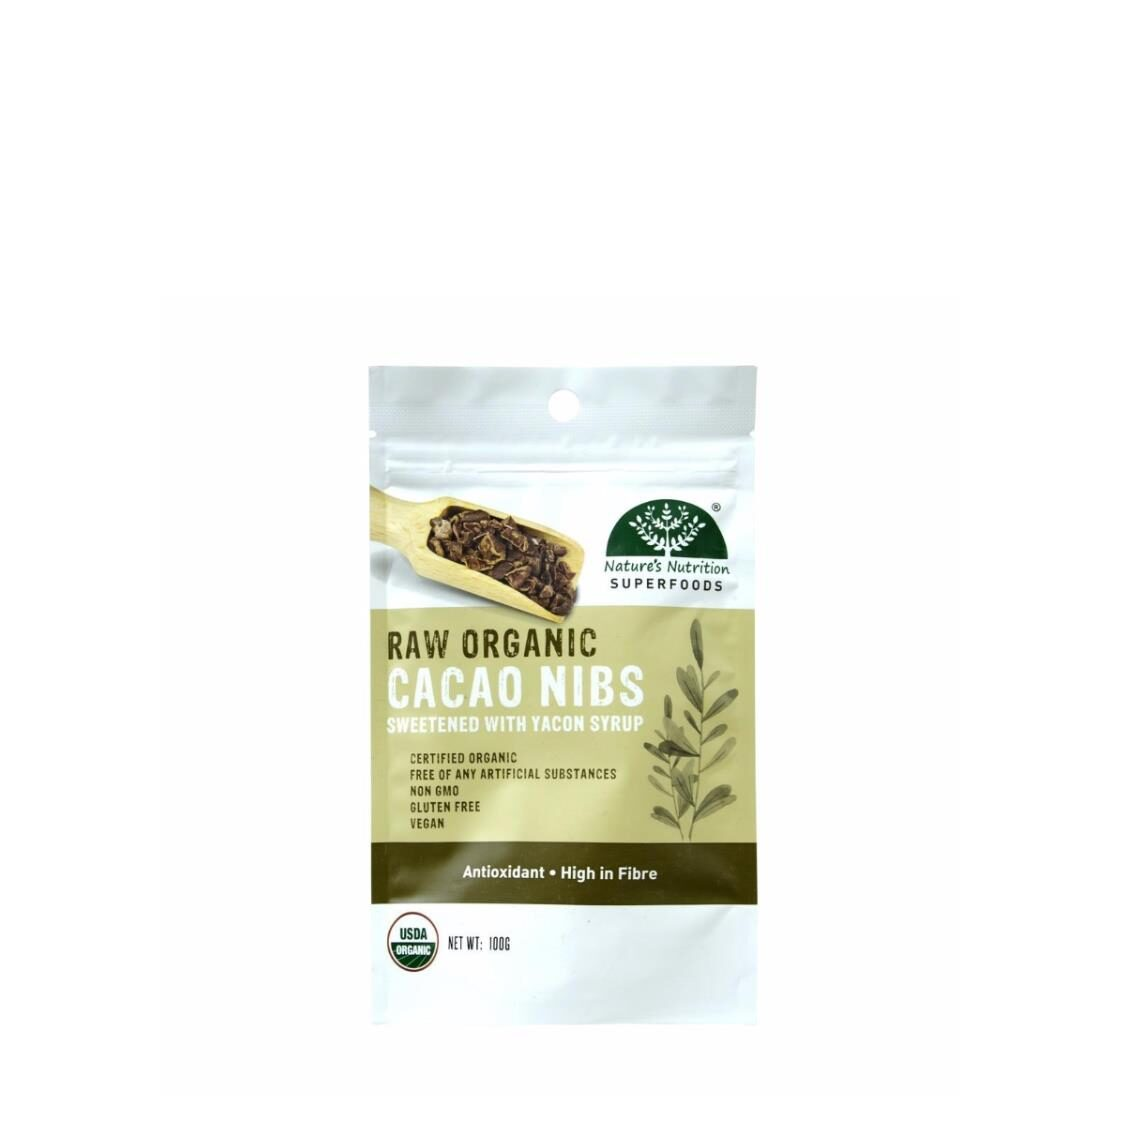 Organic Cacao Nibs with Yacon Syrup 100g